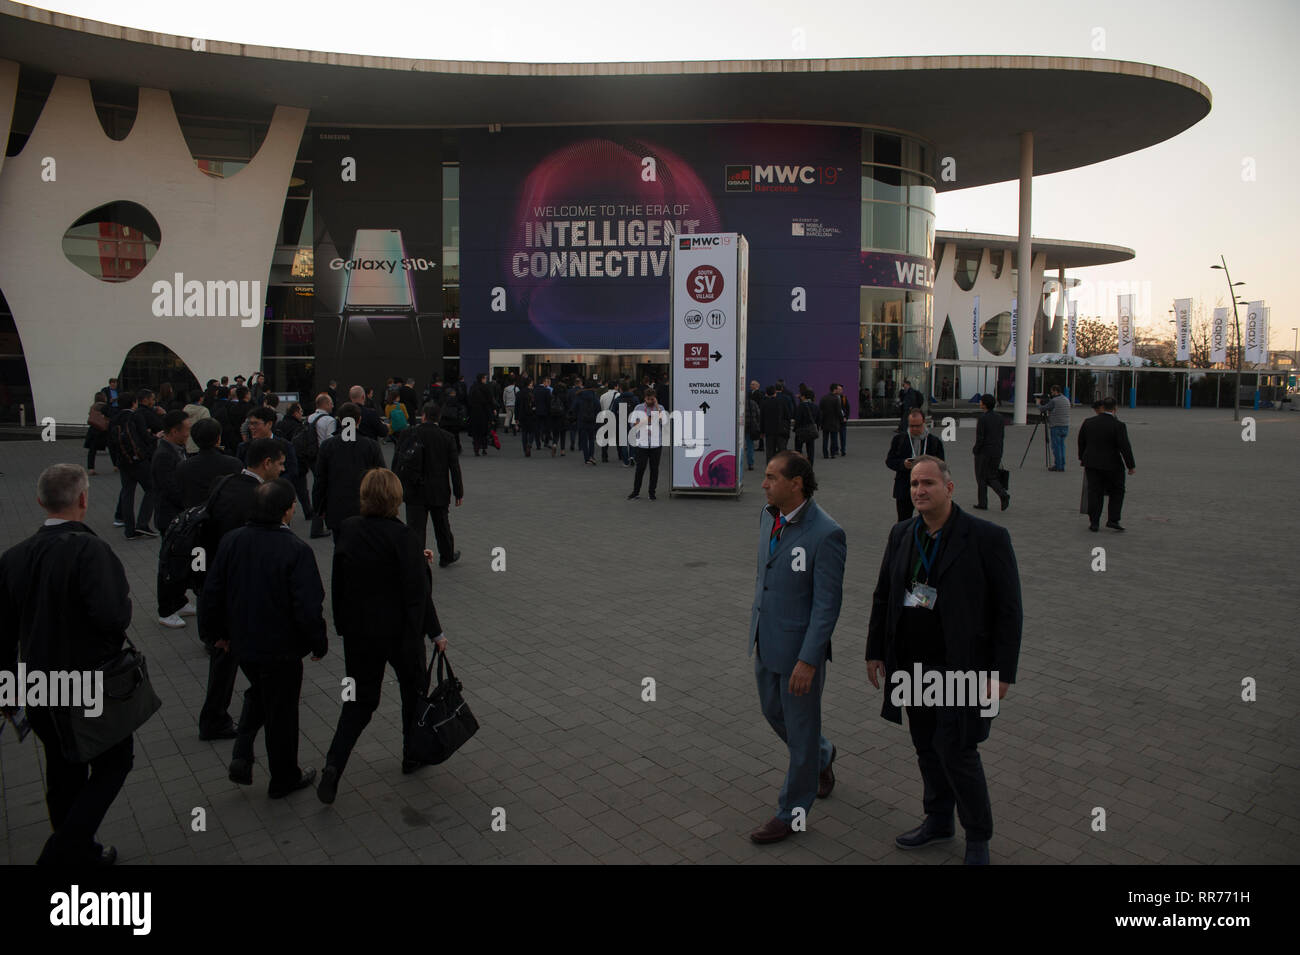 Barcelona, Spain, Monday, Feb. 25, 2019. The Mobile World Congress kicks off with the forecast to exceed 107,000 attendees from more than 200 countries this was the figure reached in its last edition. The mobile congress will revolve around intelligent connectivity and address hyperconnectivity, 5G, the internet of things, artificial intelligence (AI) and big data. Credit: Charlie Perez /Alamy Live News Stock Photo